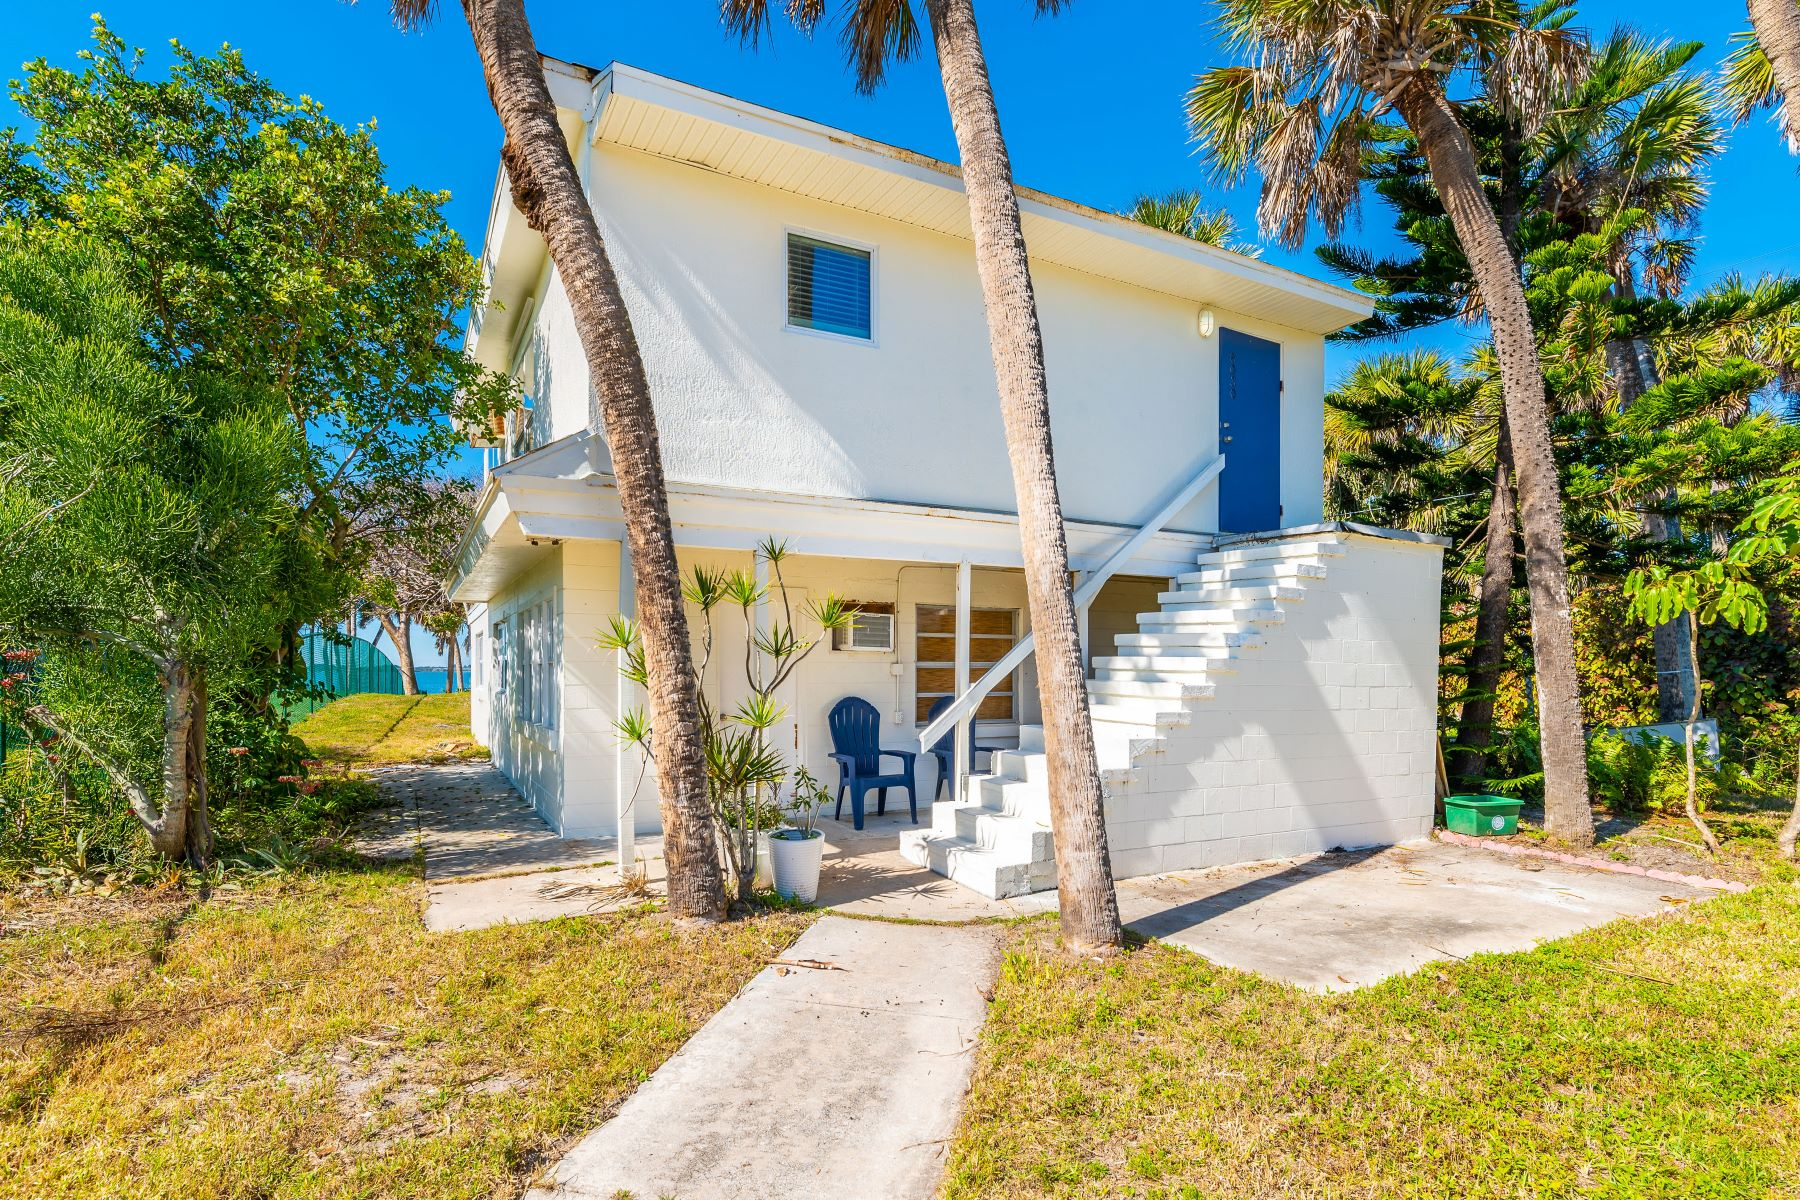 Other Residential for Sale at Premium Home site with Endless Potential. 8030 S Highway A1A Melbourne Beach, Florida 32951 United States